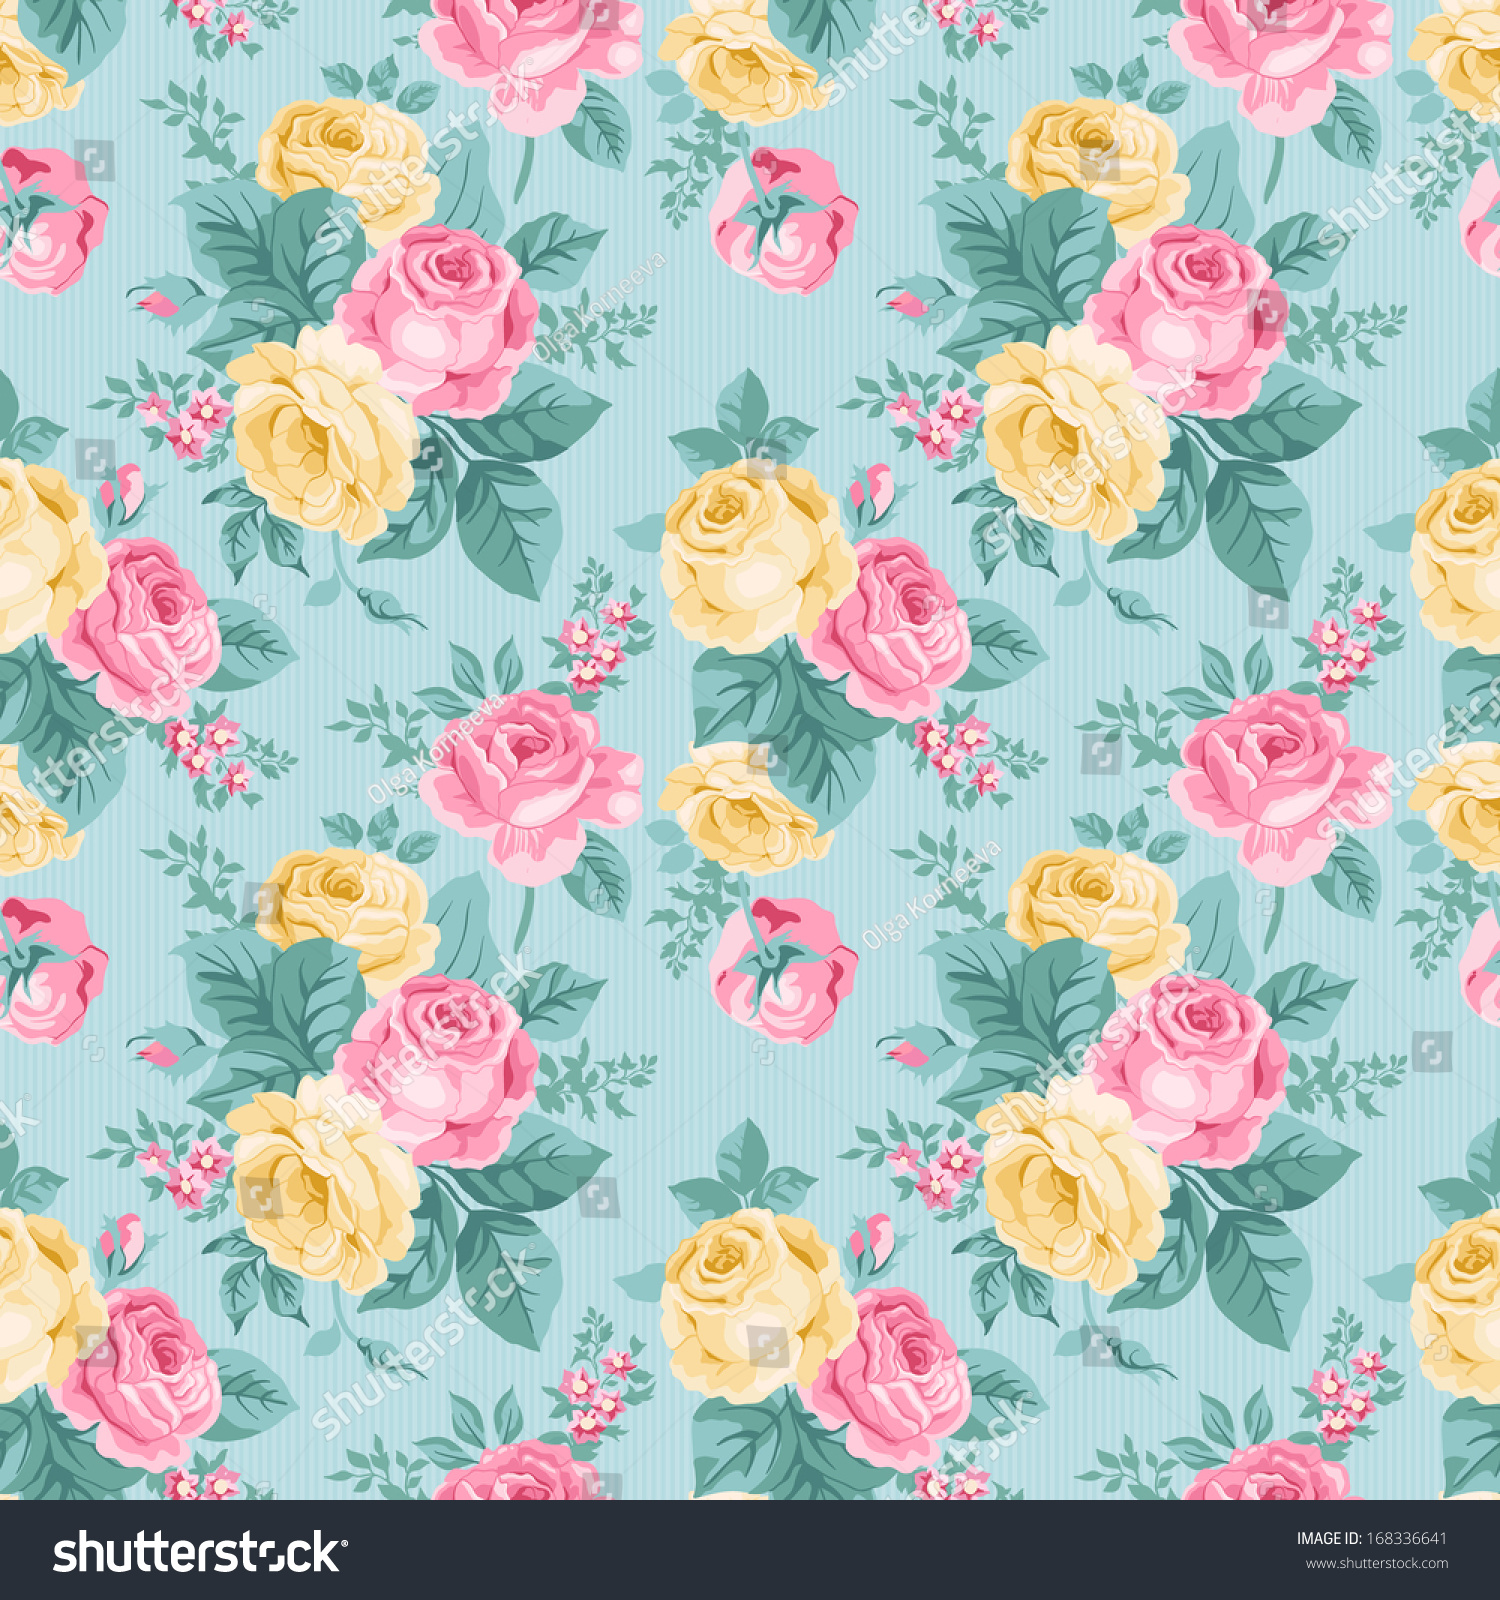 Seamless pink floral pattern - photo#44